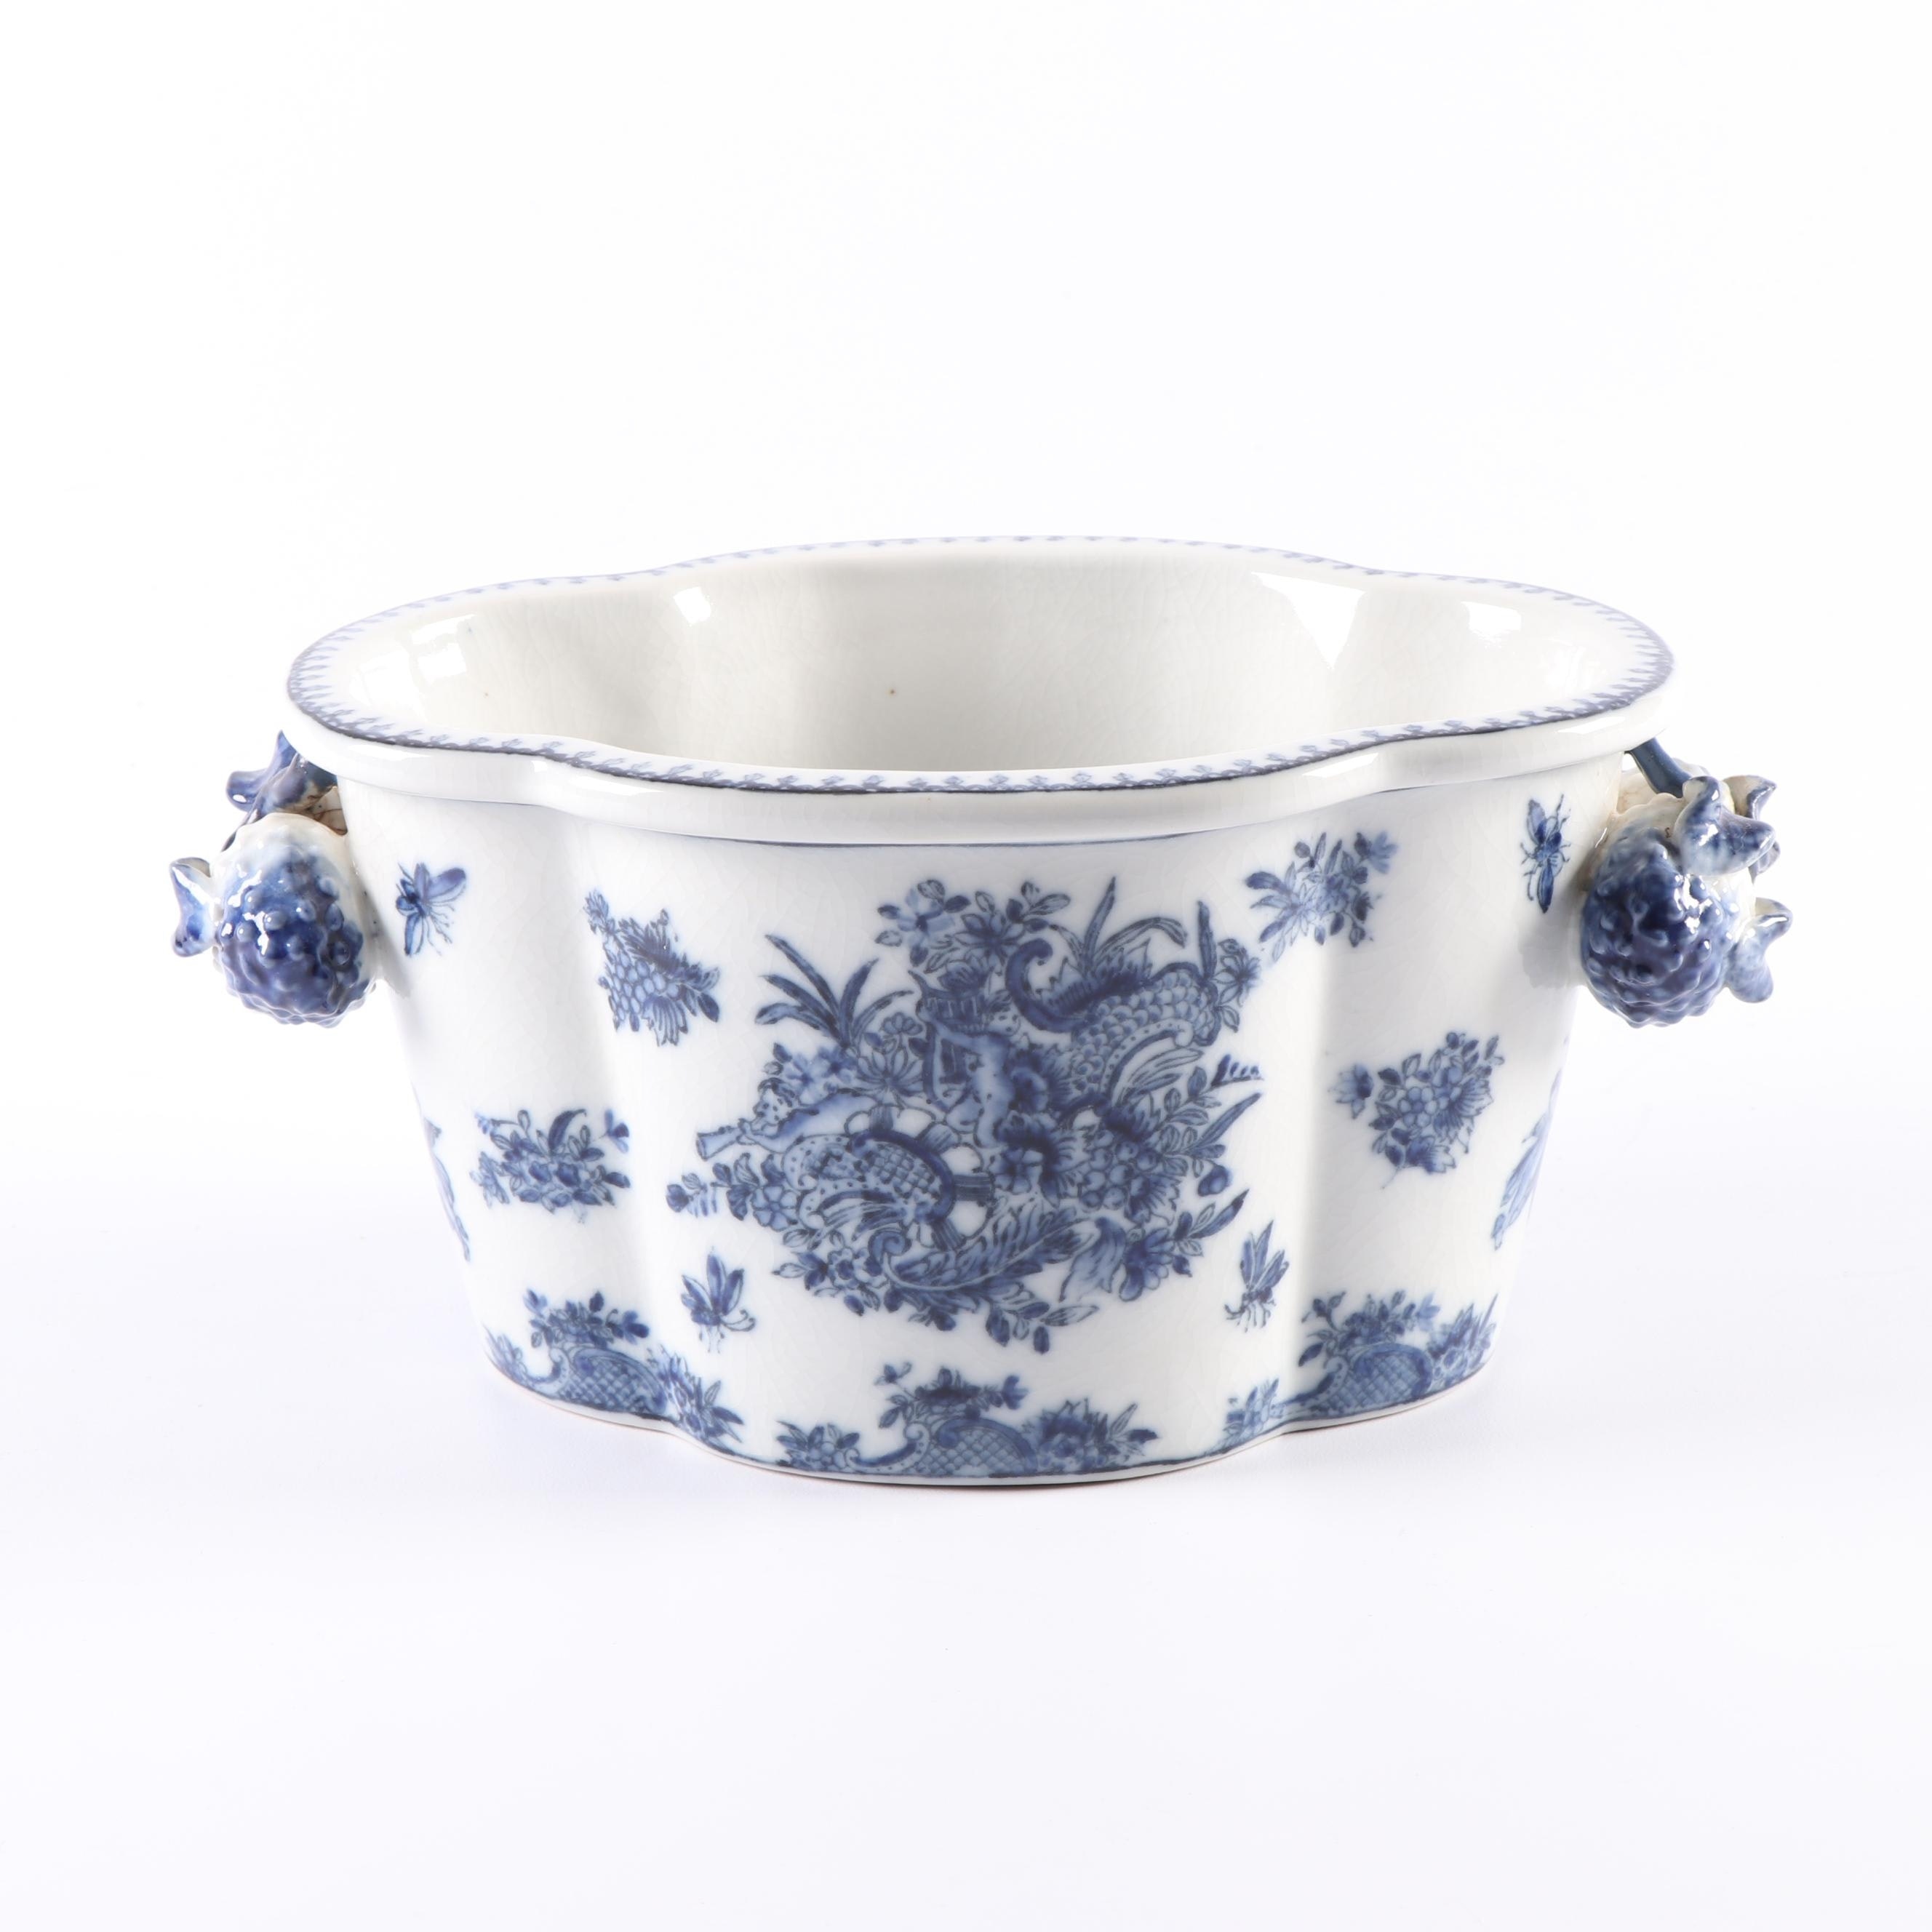 Blue and White Porcelain Cachepot